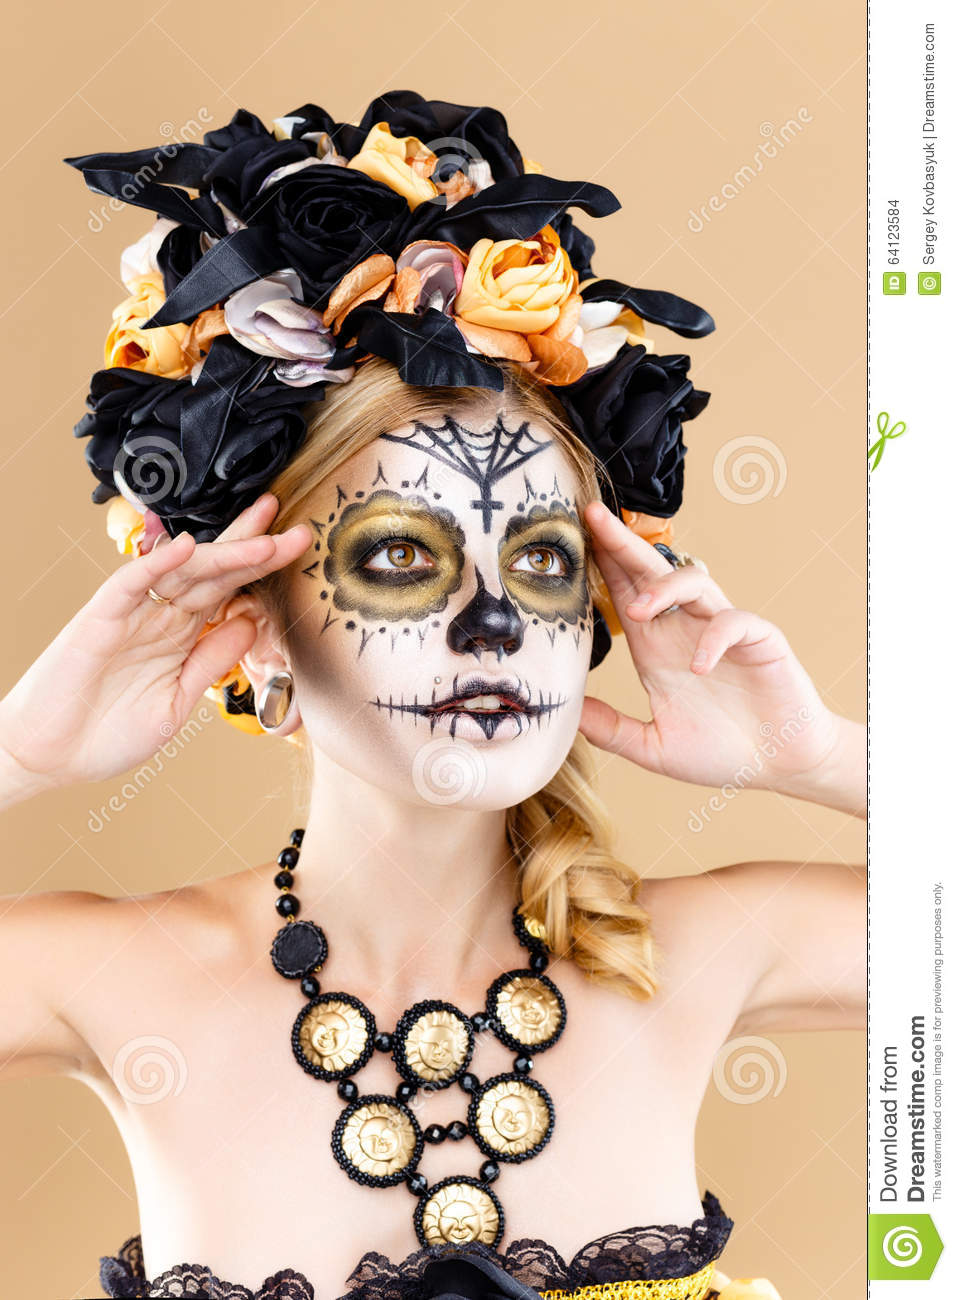 attractive young woman with sugar skull makeup royalty free stock photo. Black Bedroom Furniture Sets. Home Design Ideas